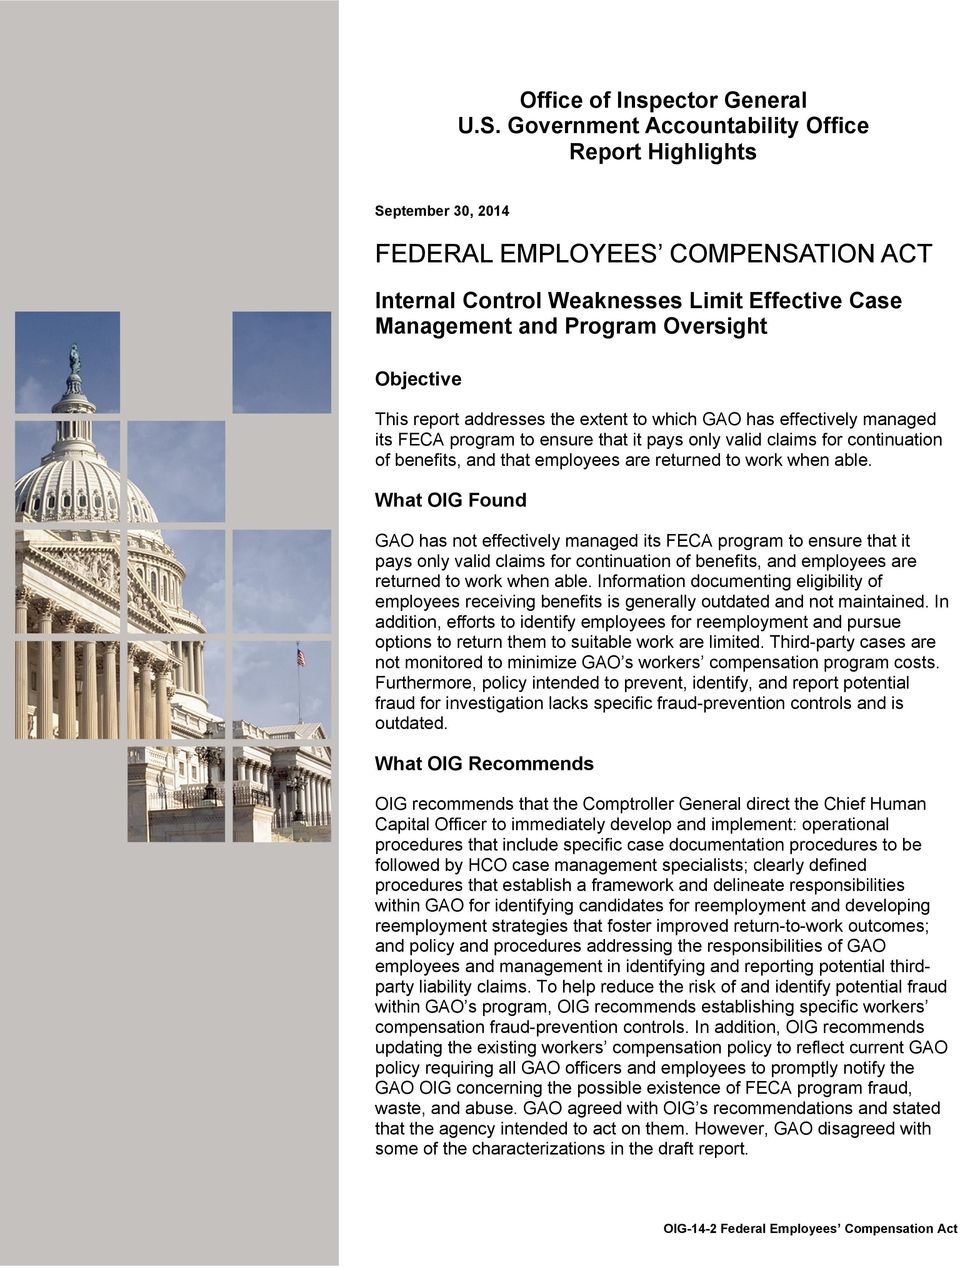 This report addresses the extent to which GAO has effectively managed its FECA program to ensure that it pays only valid claims for continuation of benefits, and that employees are returned to work